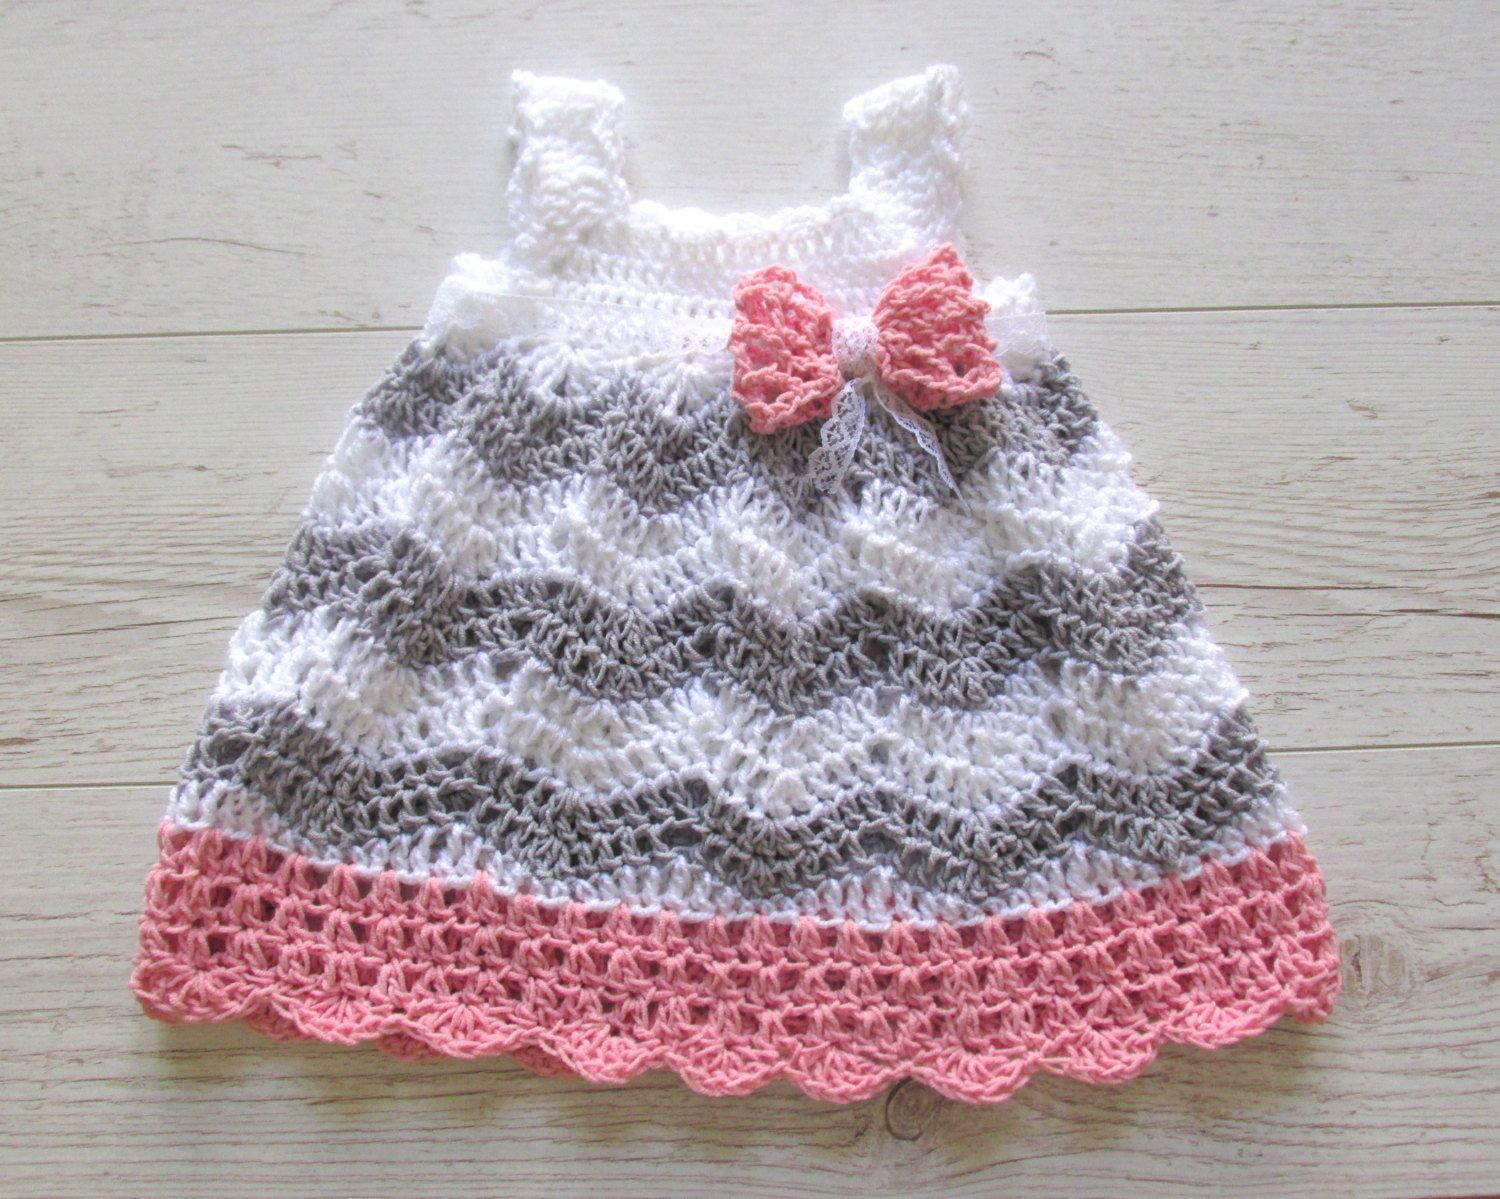 Baby girl crochet dressbaby shower gift little by paintcrochet baby girl crochet dressbaby shower gift little by paintcrochet bankloansurffo Choice Image